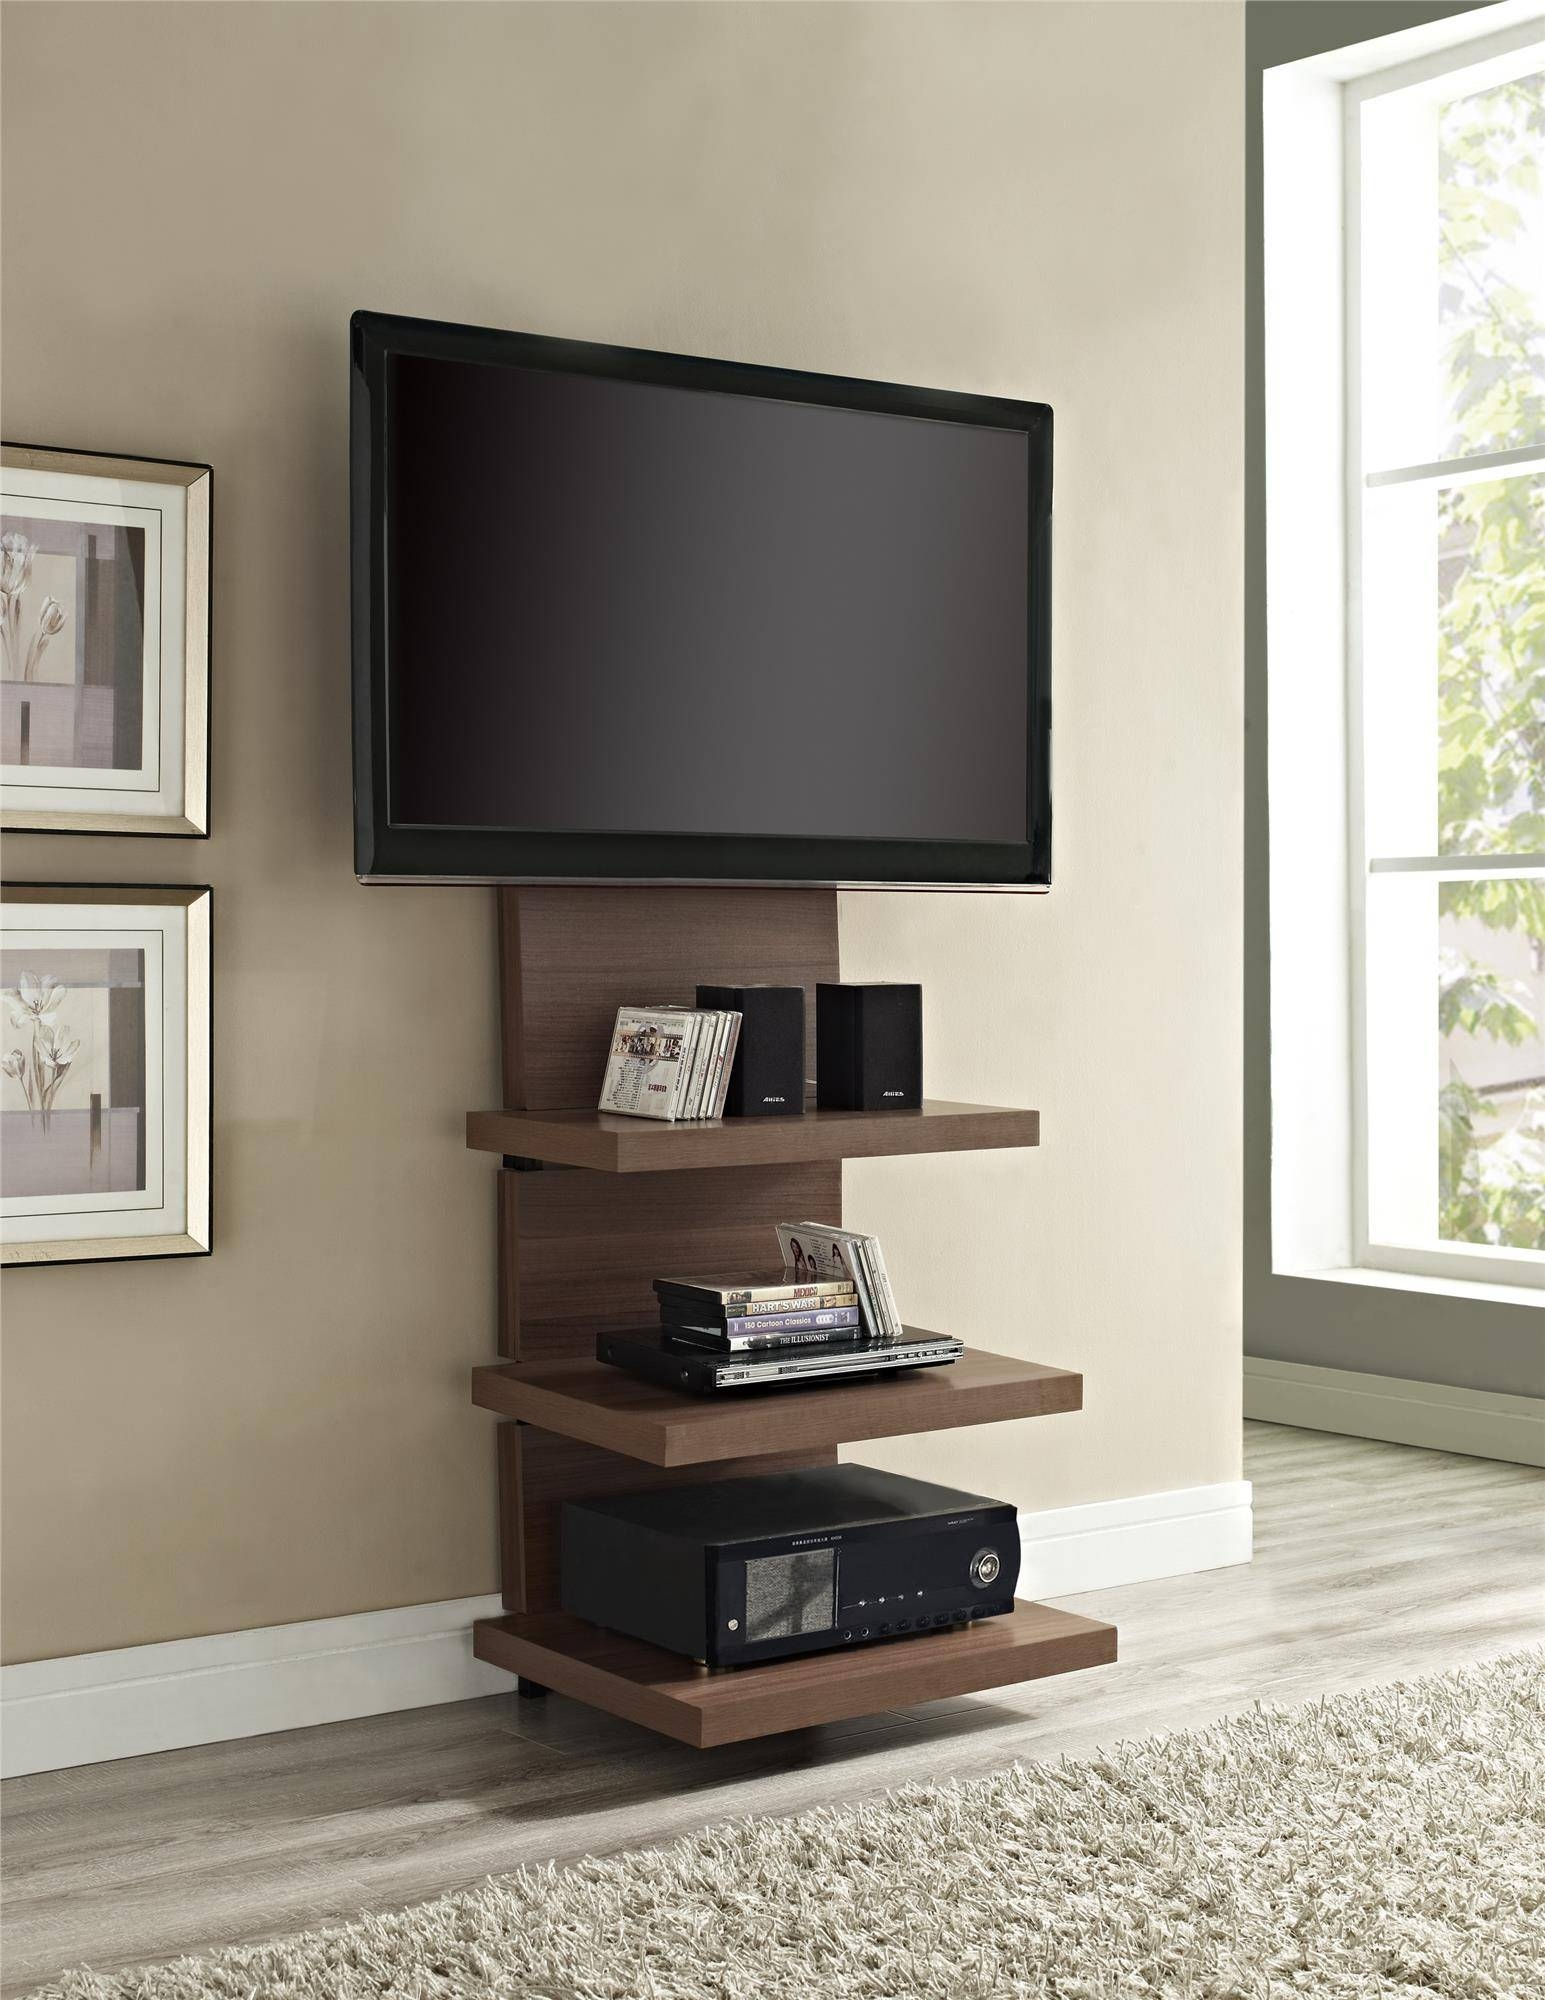 Narrow Tv Stands For Flat Screens   Home Design Within Tall Skinny Tv Stands (Photo 2 of 15)